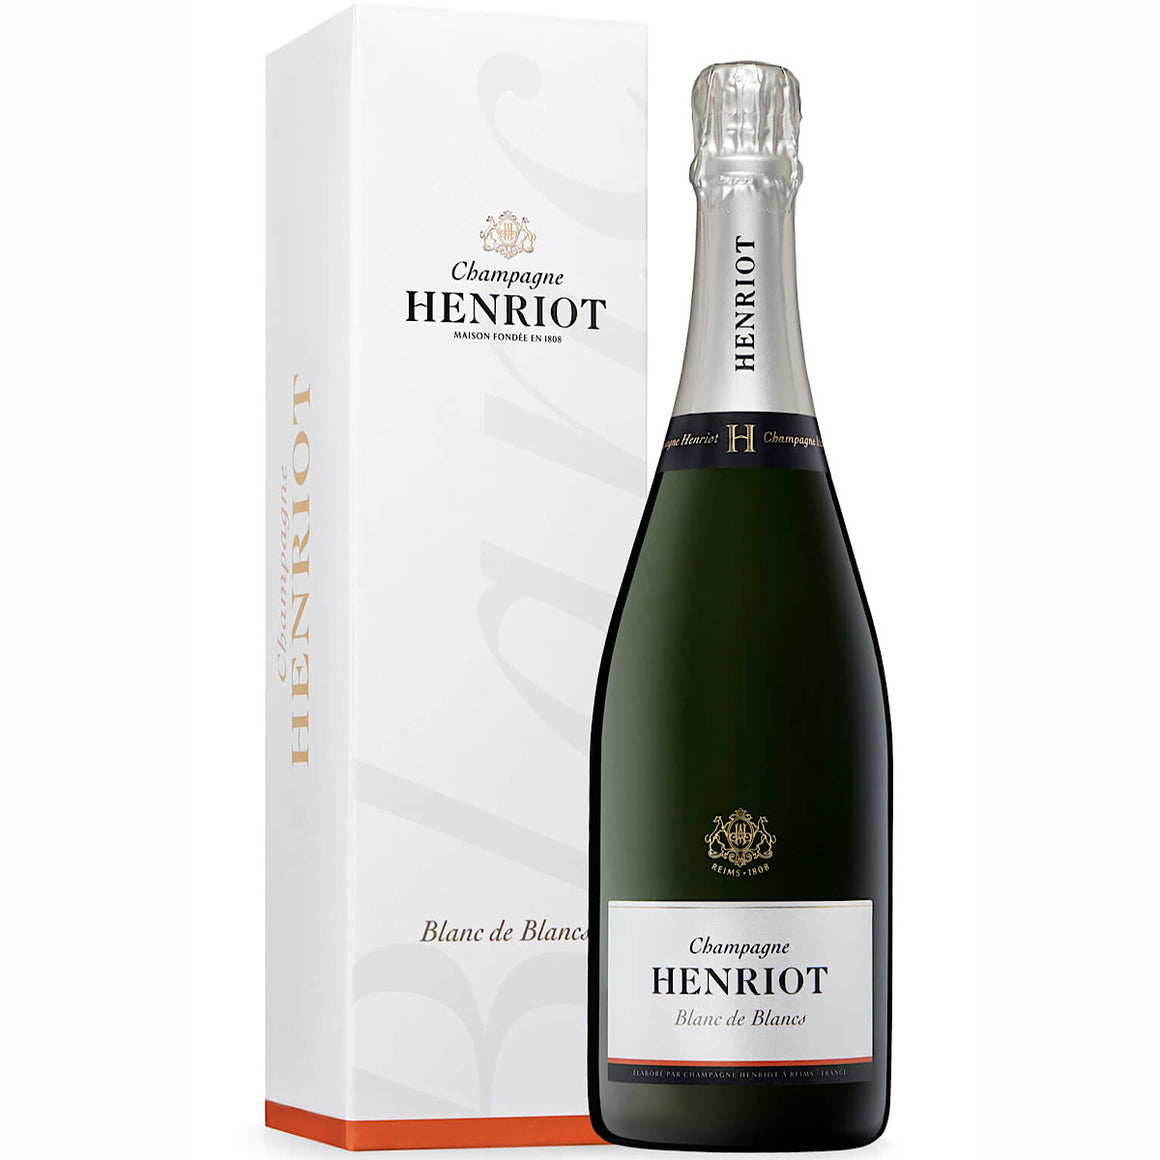 Henriot Champagne Blanc de Blanc 6 Bottle Case 75cl